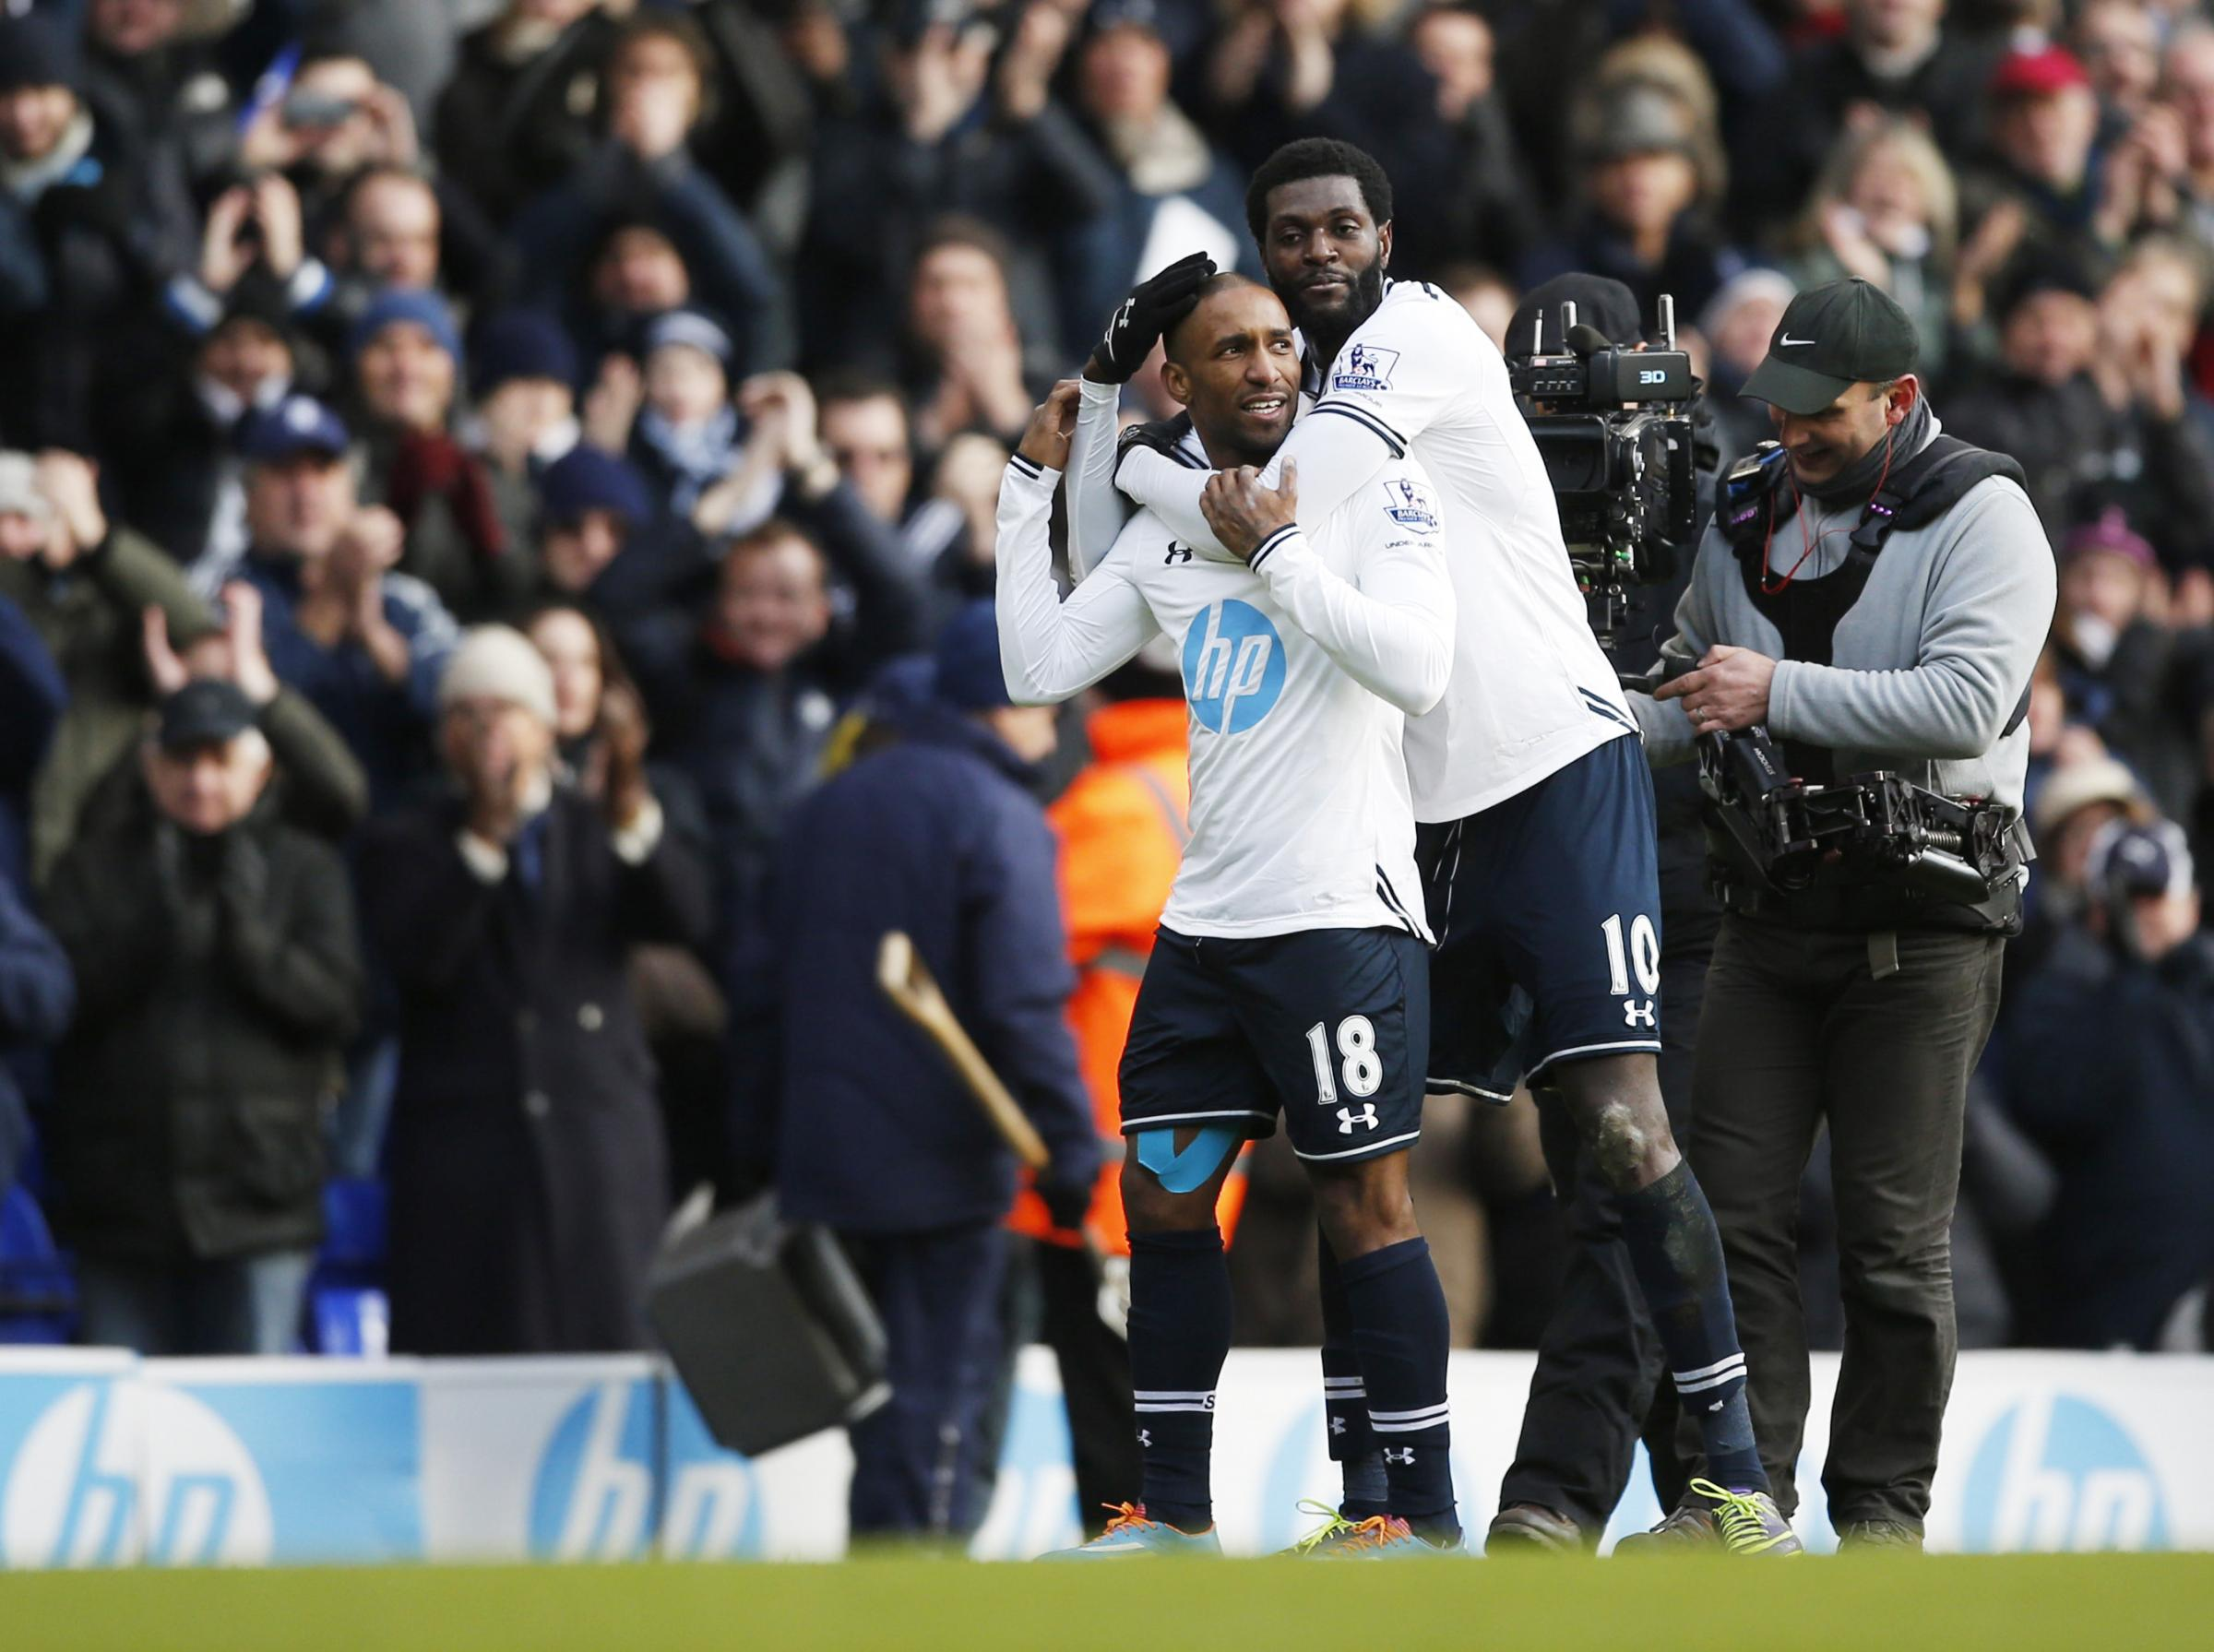 Adebayor and Defoe celebrate after the final whistle